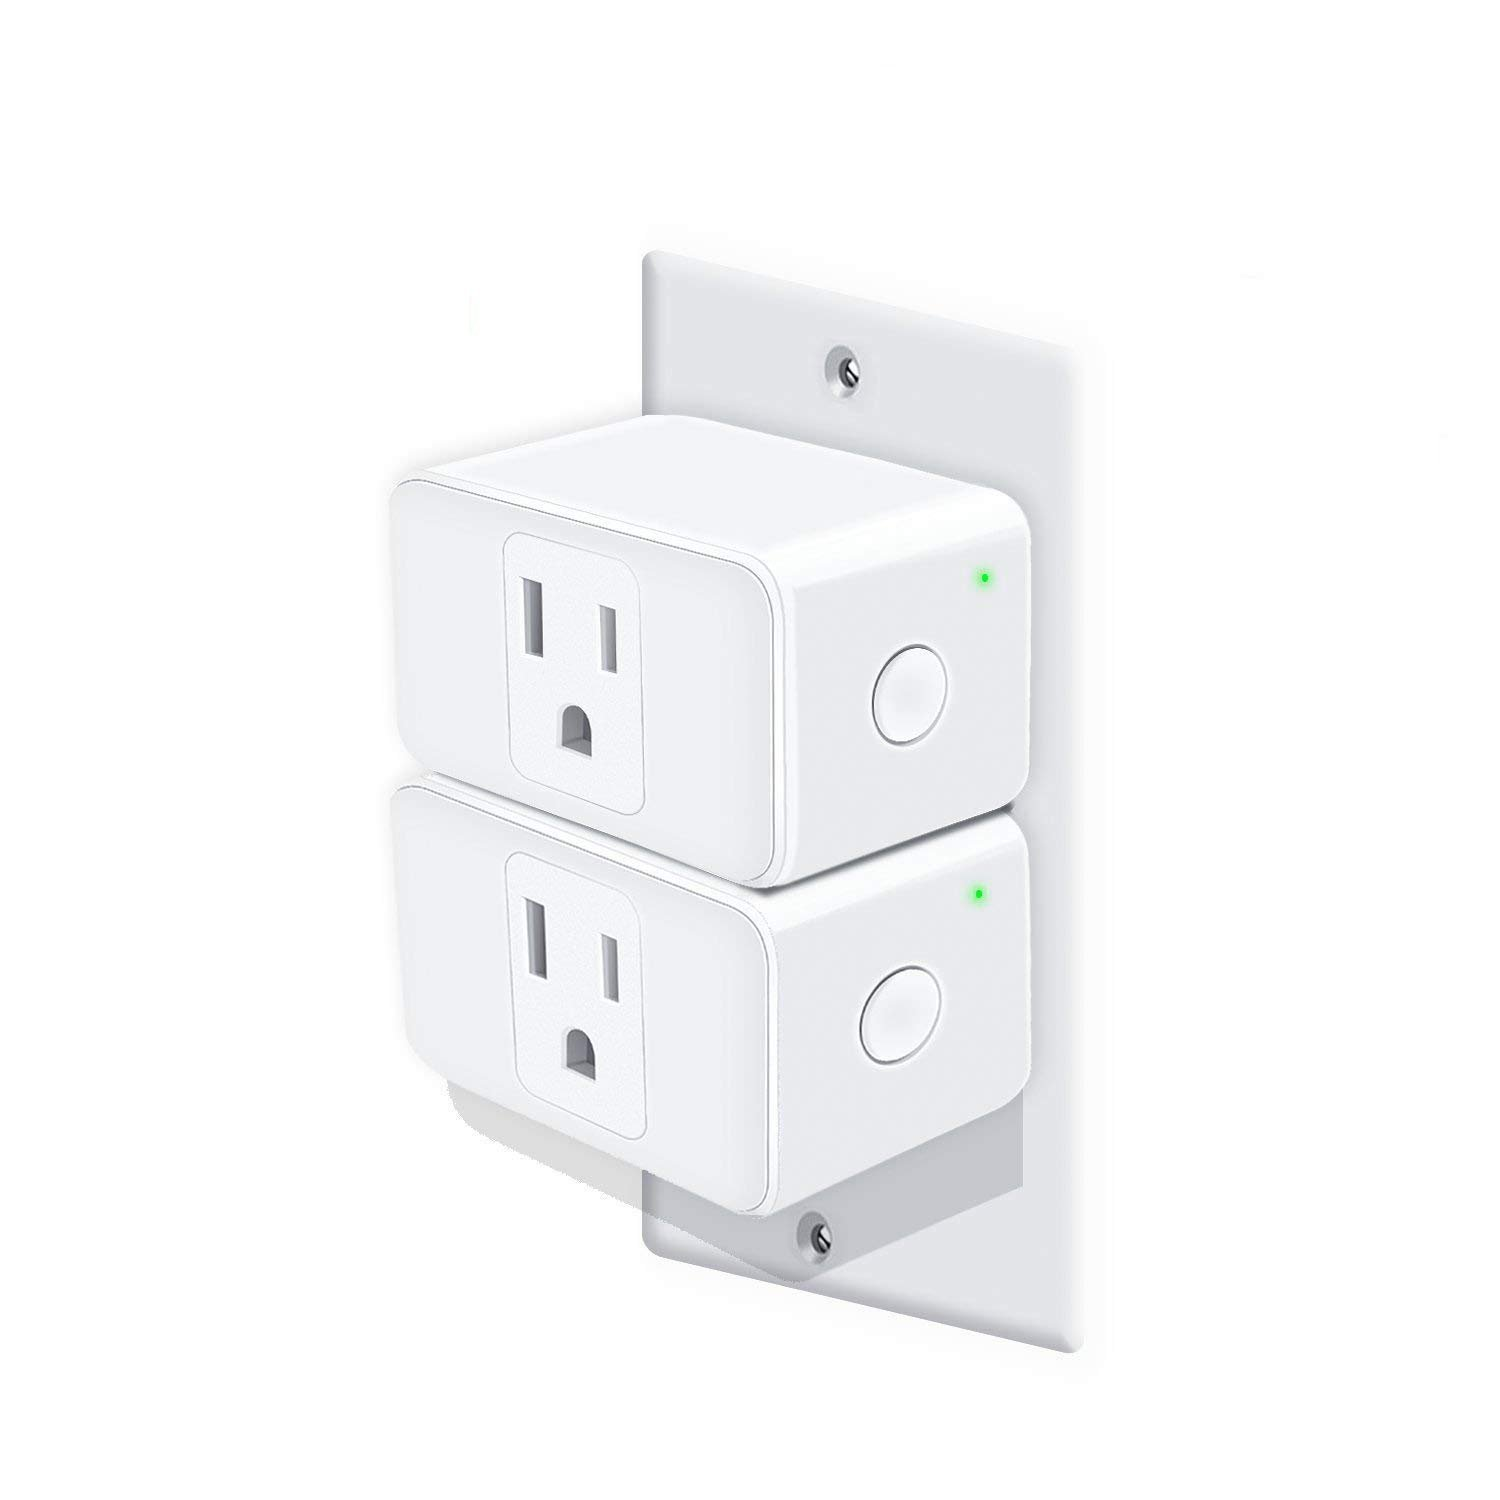 TicLife Smart Plug, 2 Pack, Works with Alexa and Google Assistant, Wi-Fi Remote Control, No Hub Required, ETL Satefy Certification Listed, US Only, Outlet not Included.